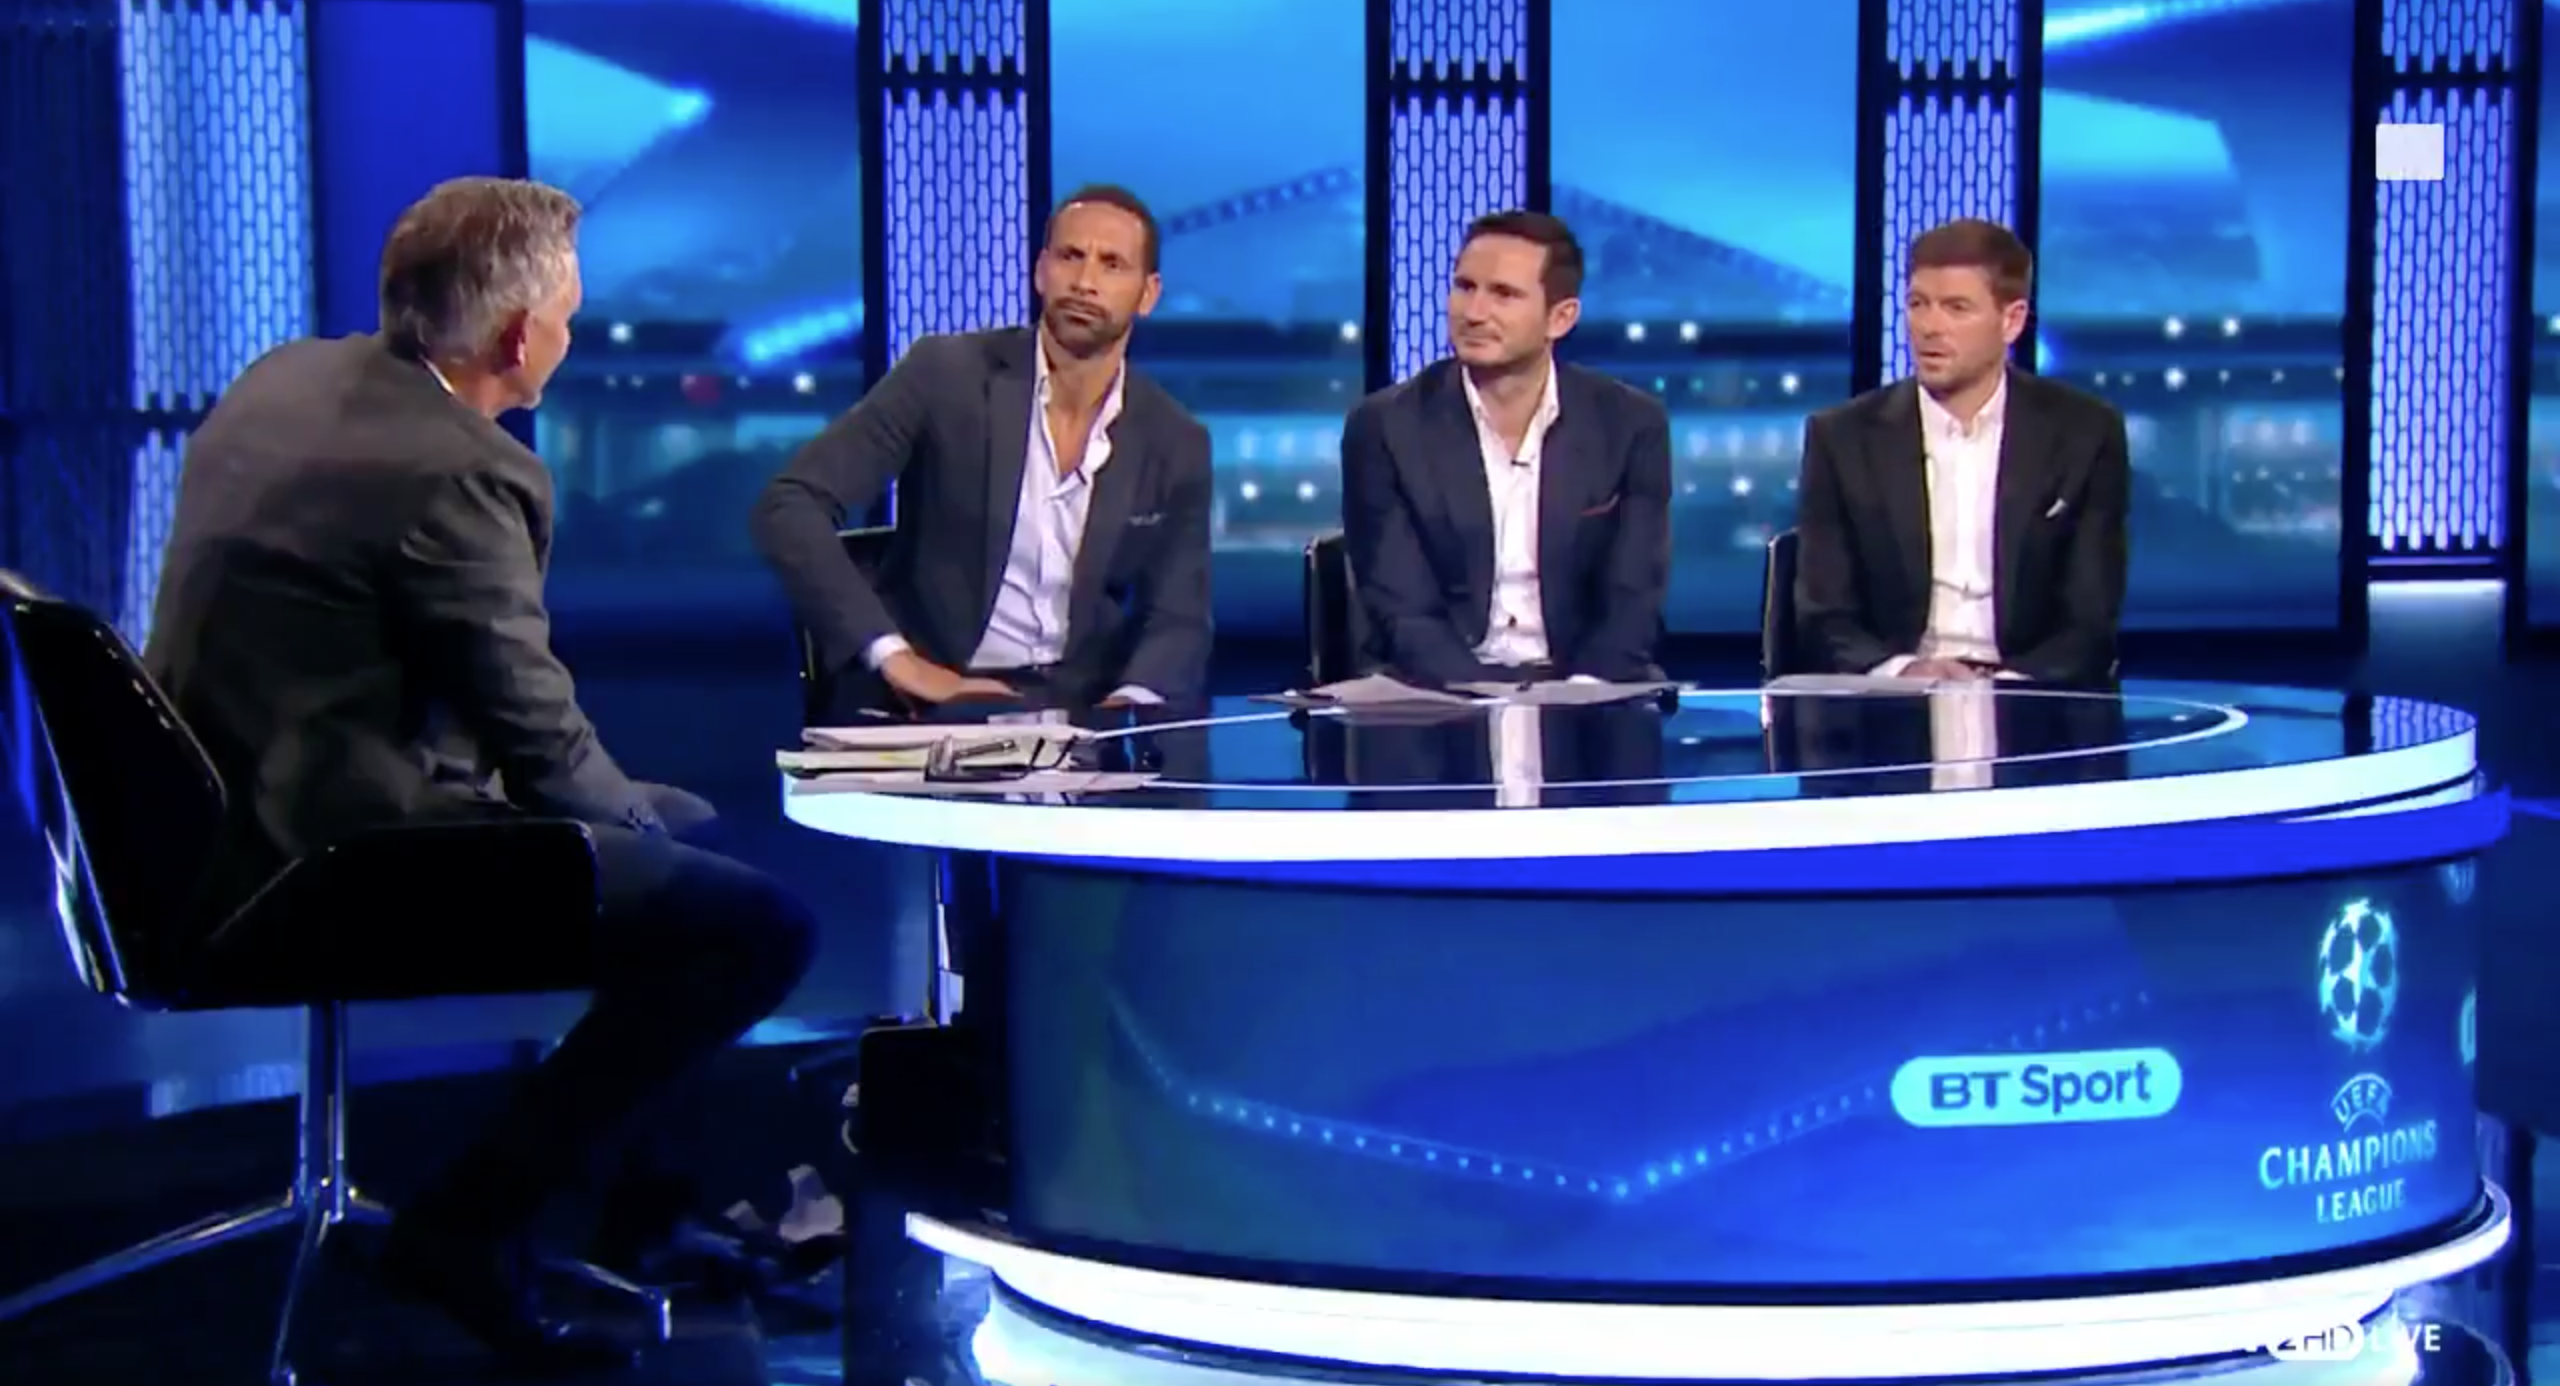 WATCH: Steven Gerrard's Amazing Response To Gary Lineker's Question About The 2006 Champions League